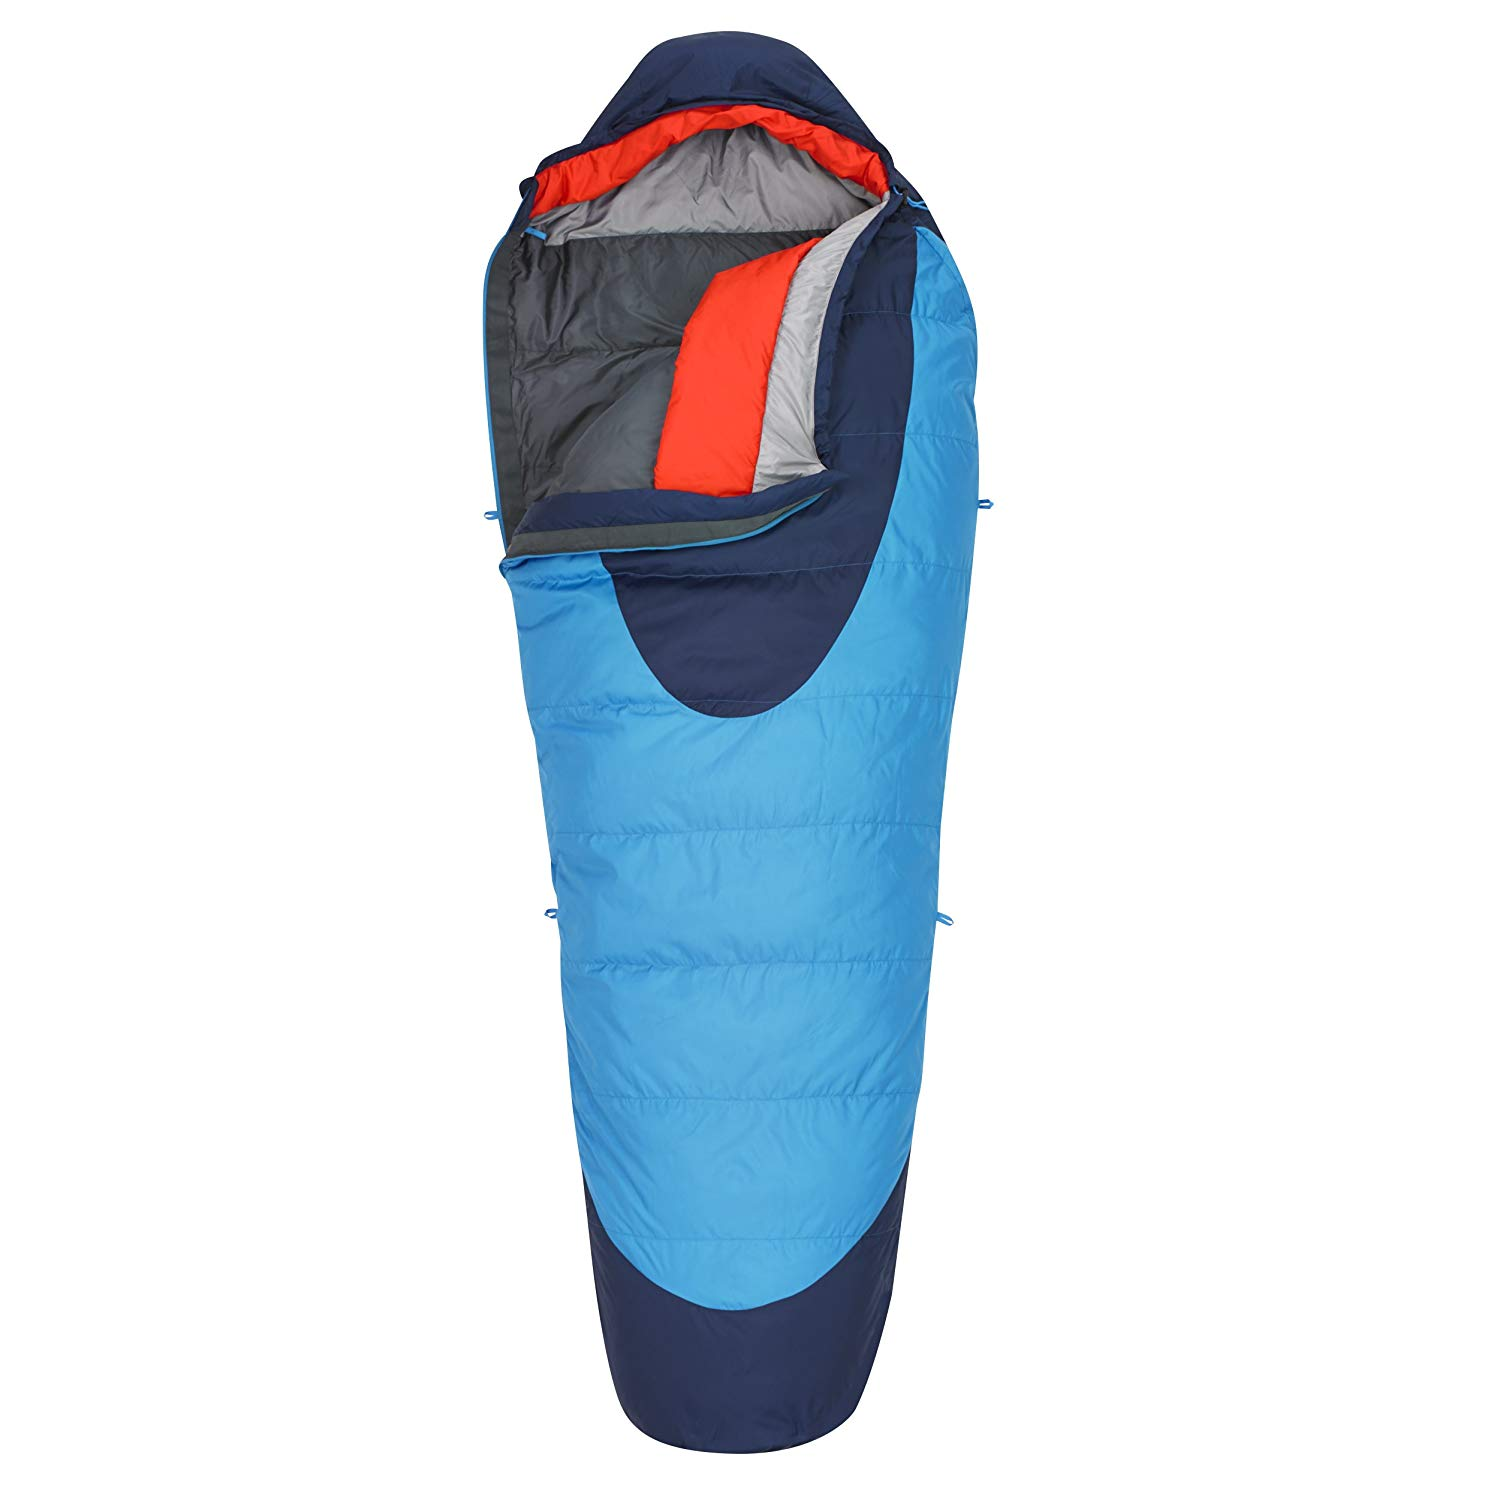 Kelty Best Sleeping Bags Review by www.snoremagazine.com